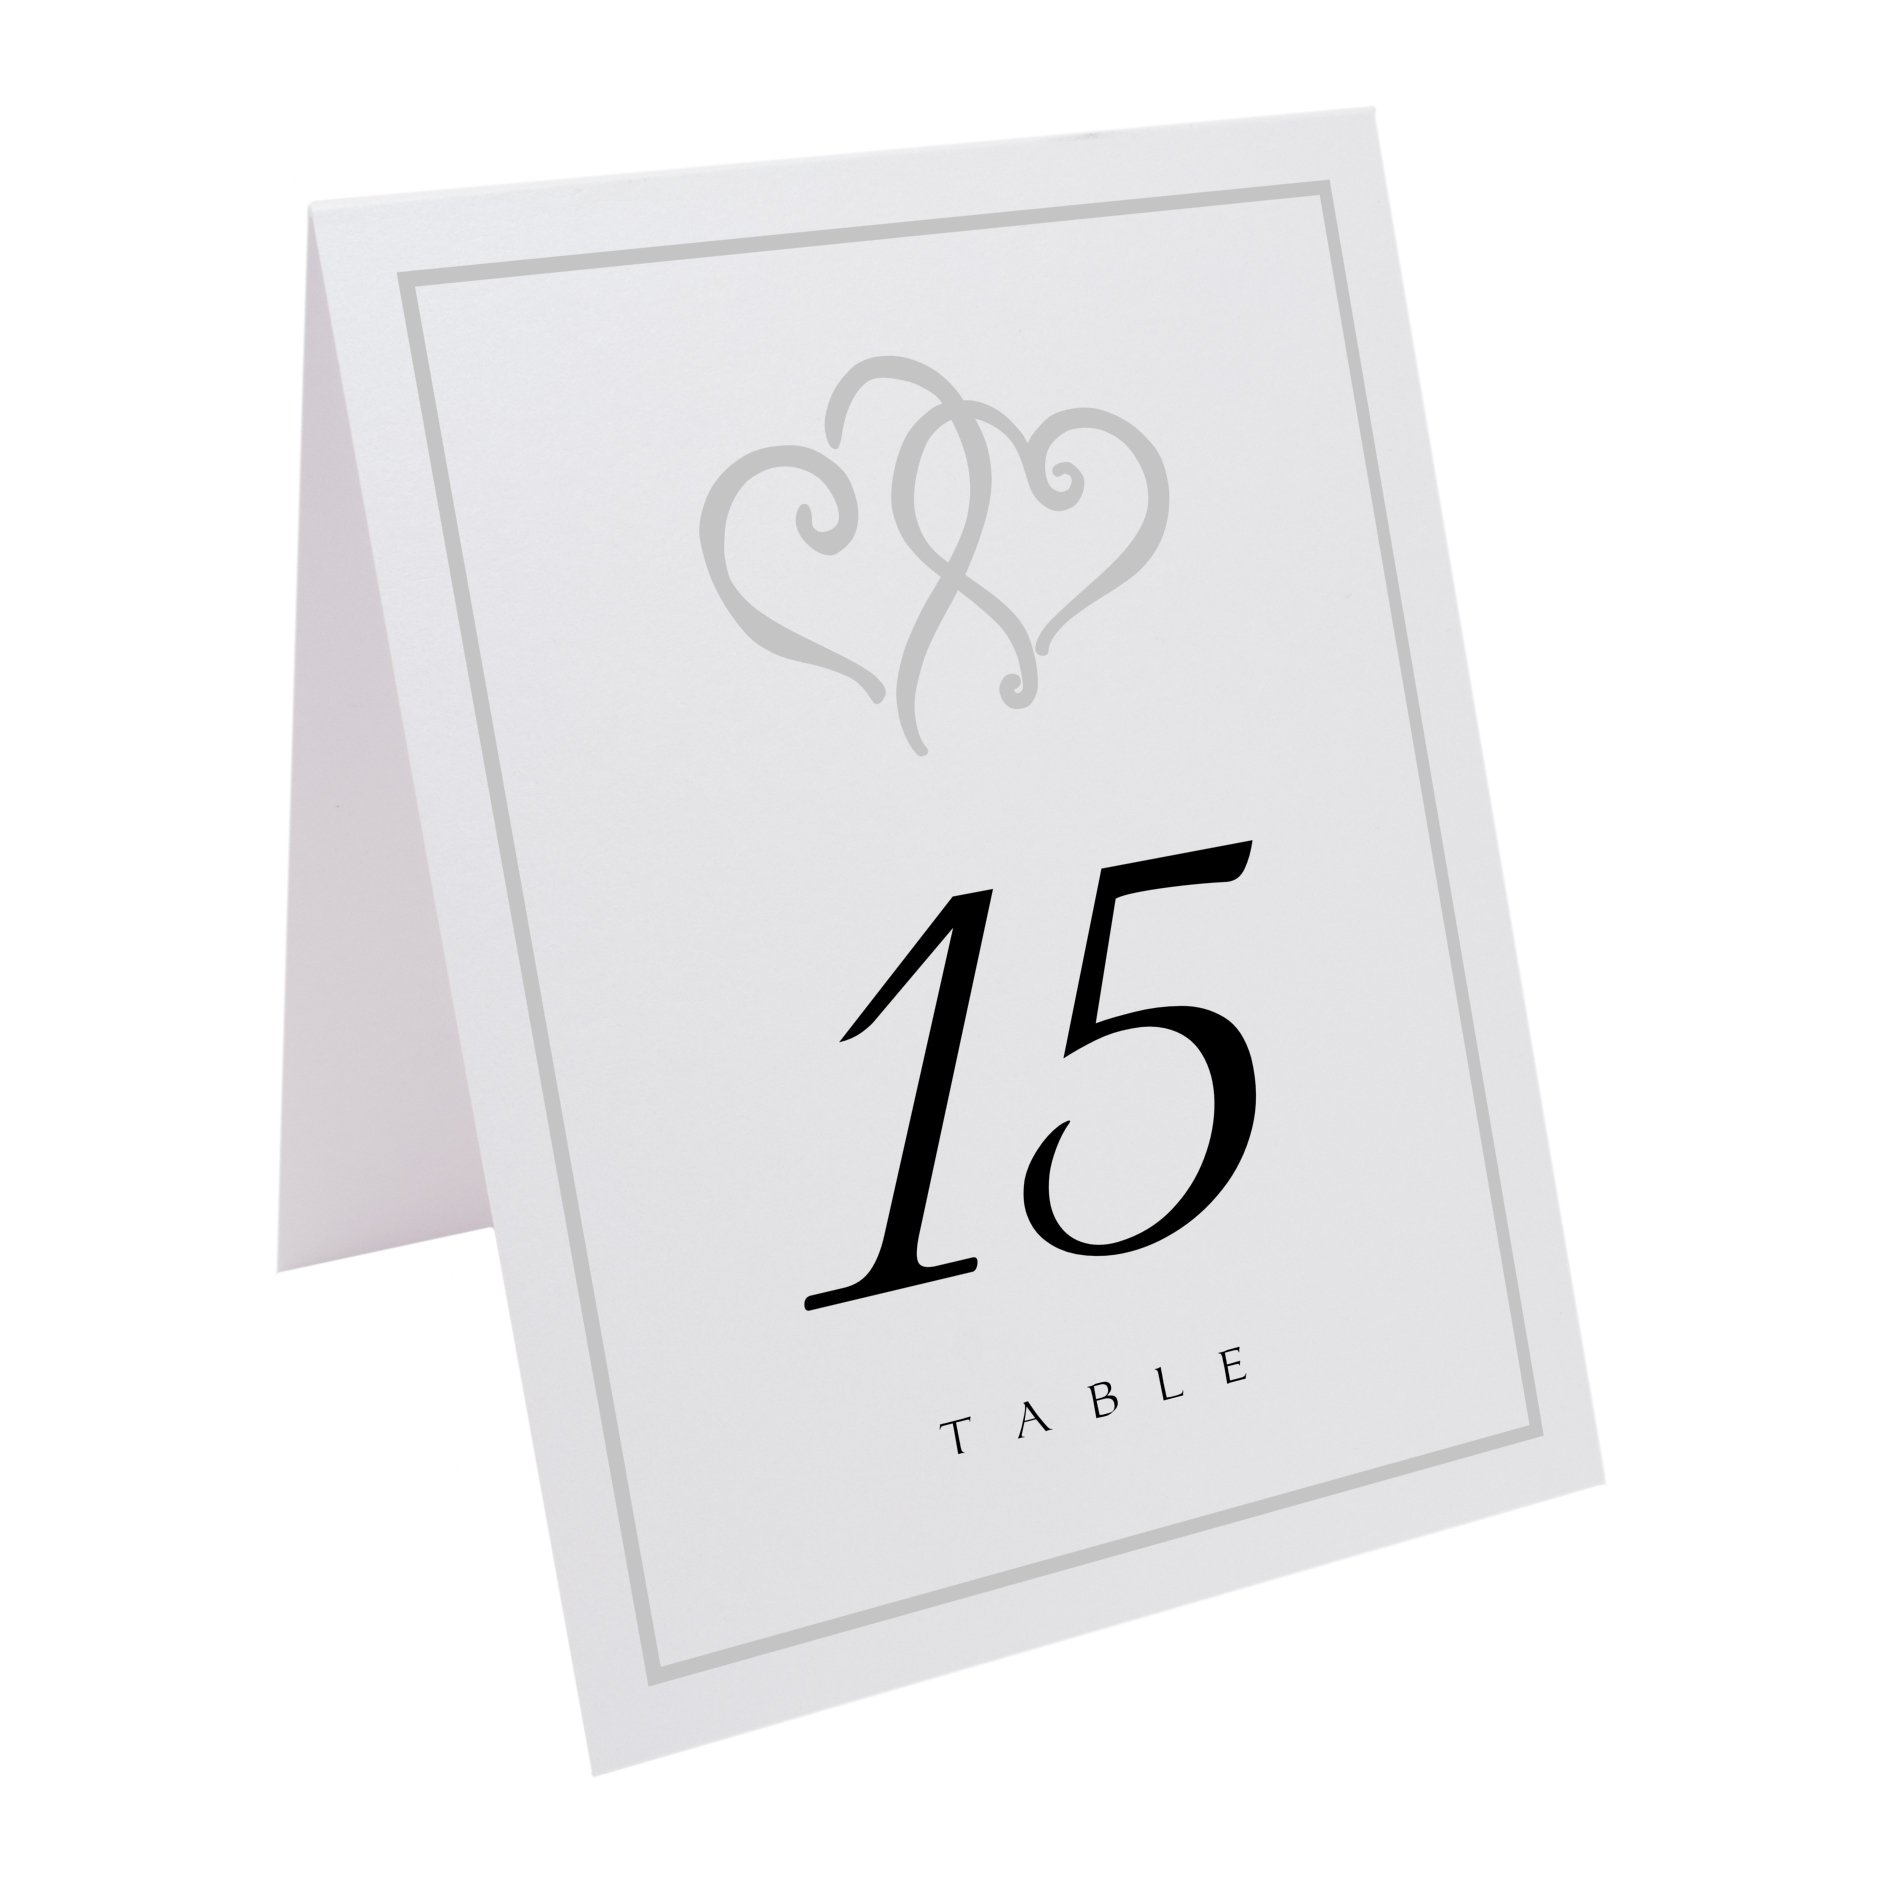 Documents and Designs Linked Hearts and Border Table Numbers (Select Color/Quantity), White, Silver, 1-70